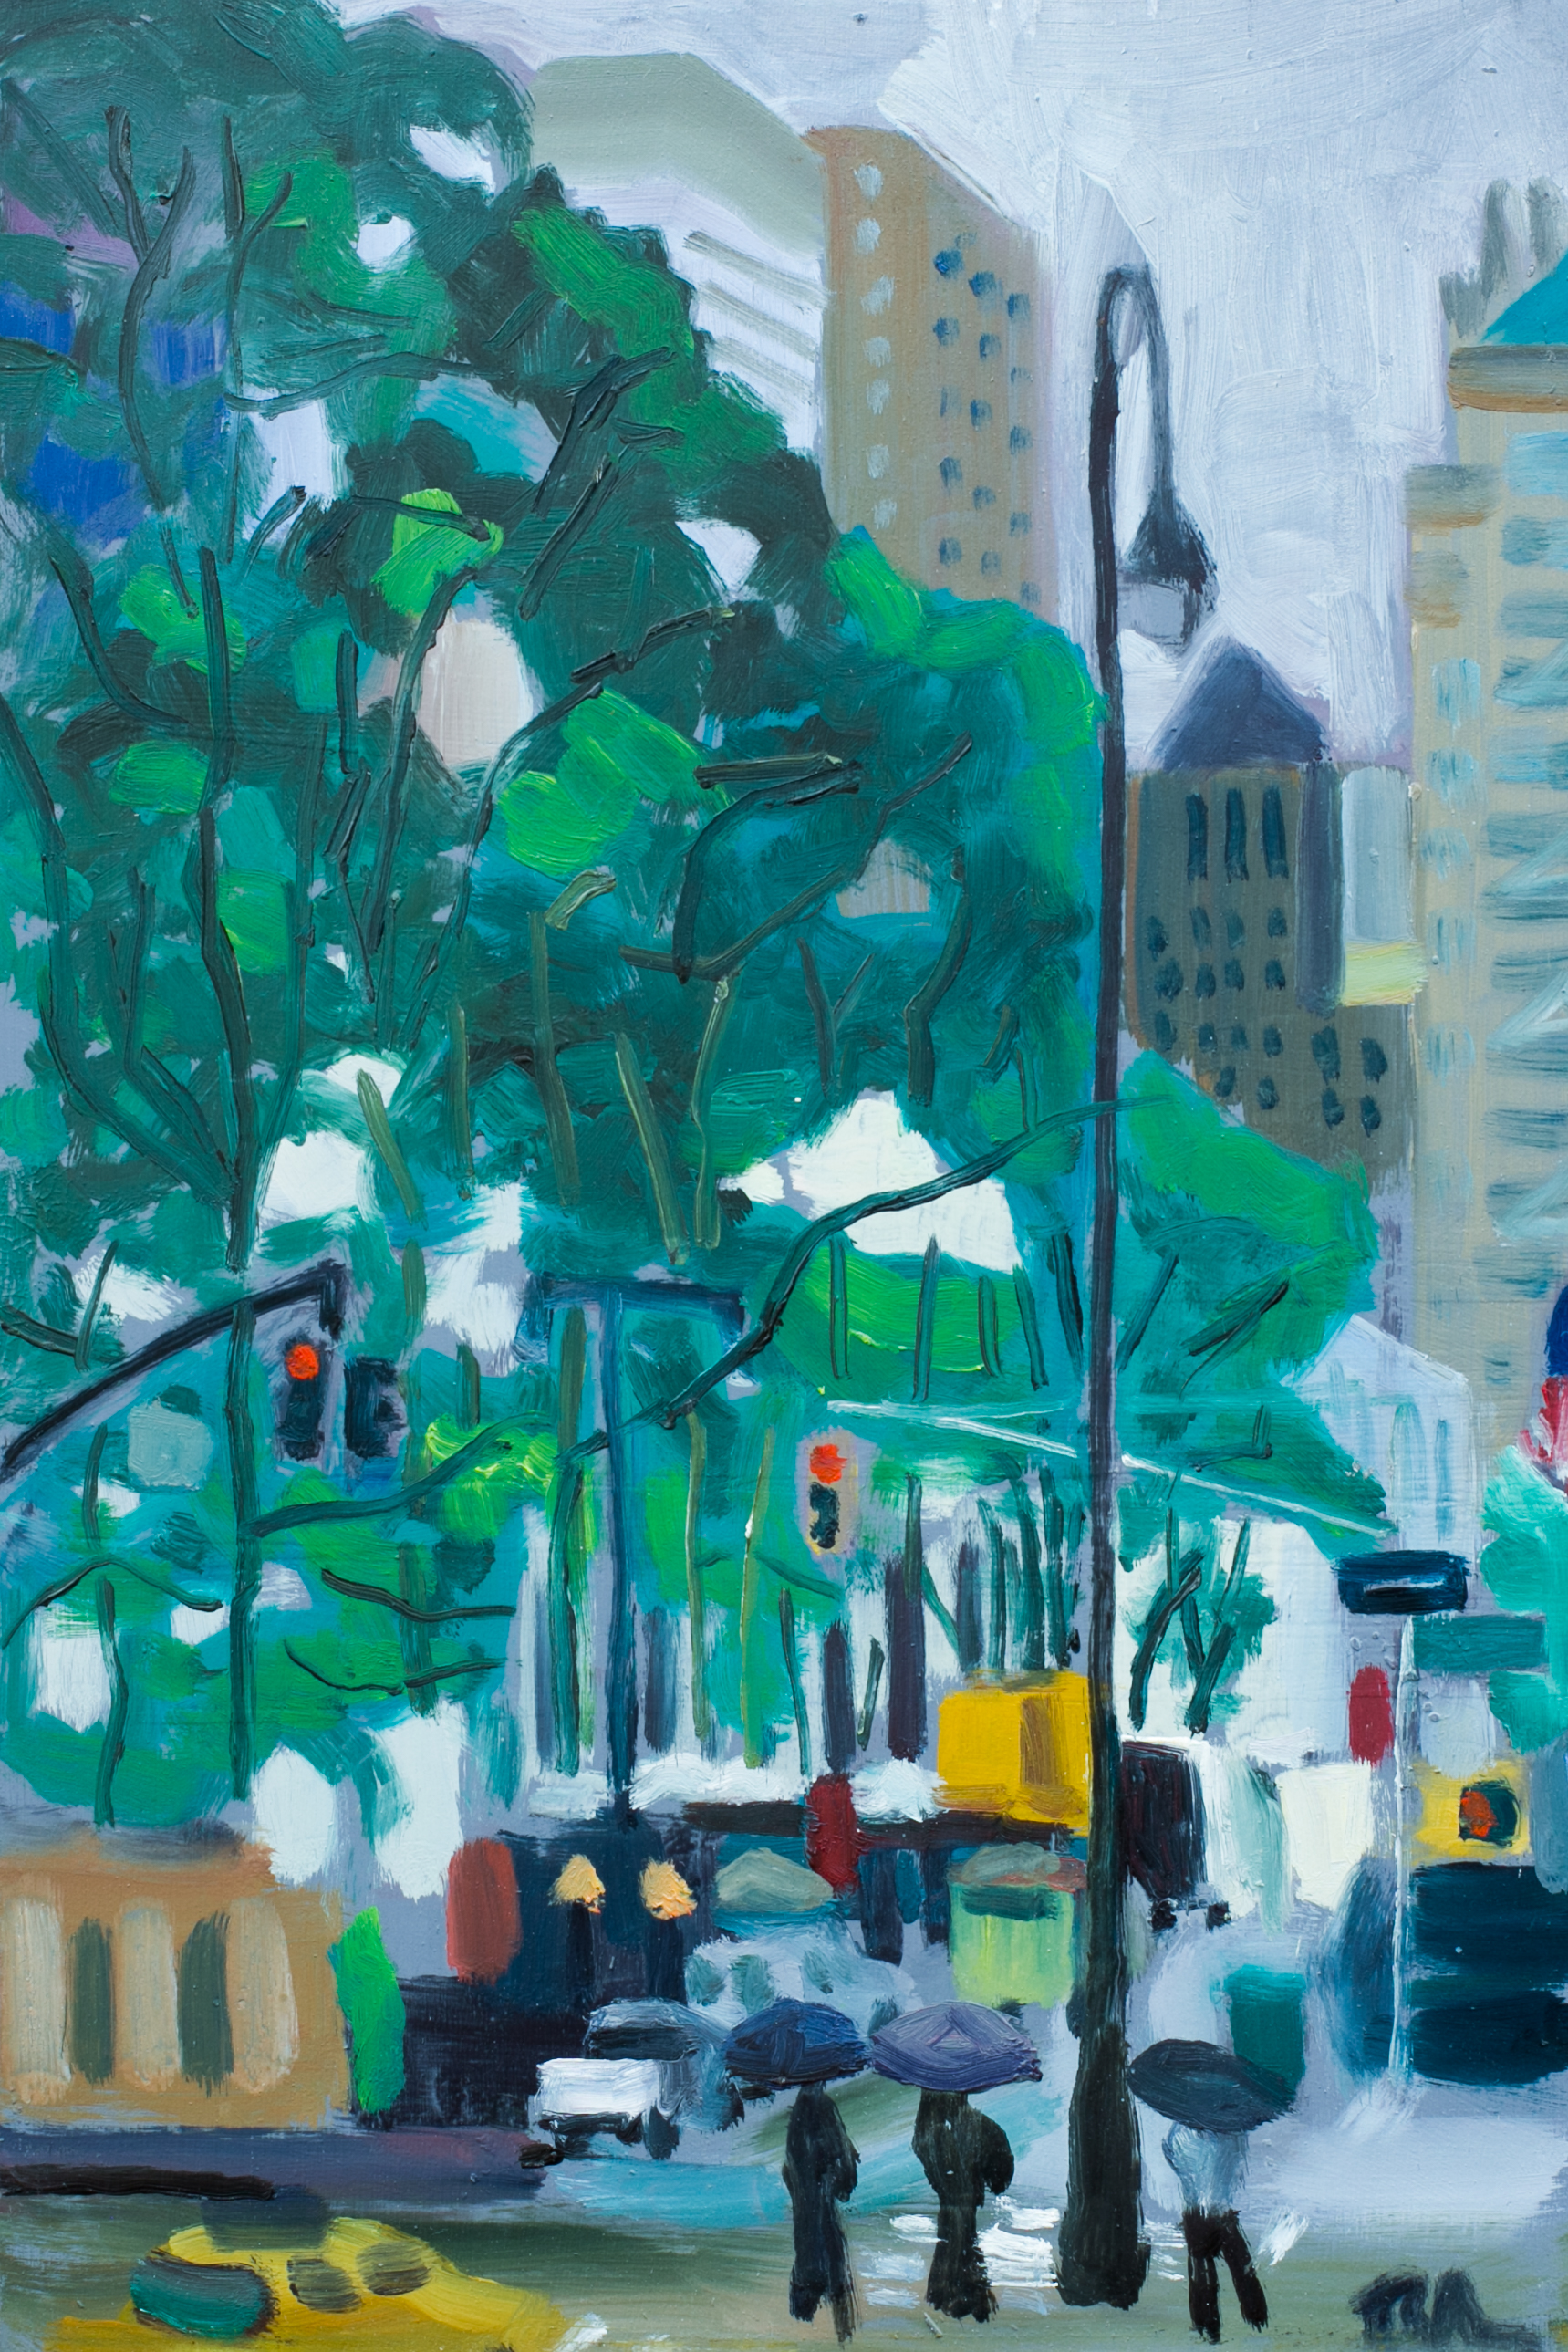 "Bryant Park #8 - May 24, 2016 - 12"" x 8"" - oil on panel"